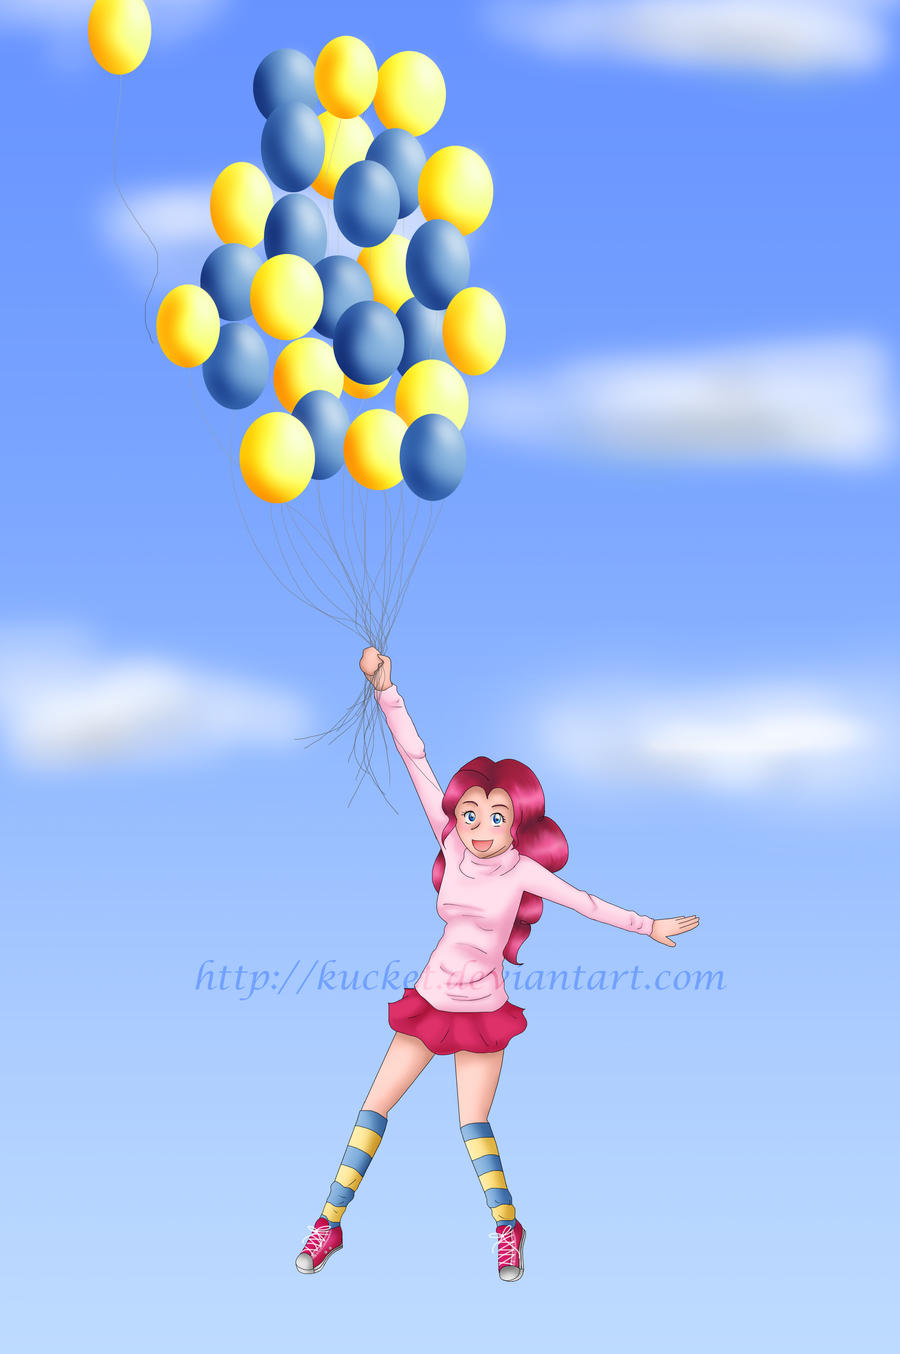 Fun With Balloons by Kucket